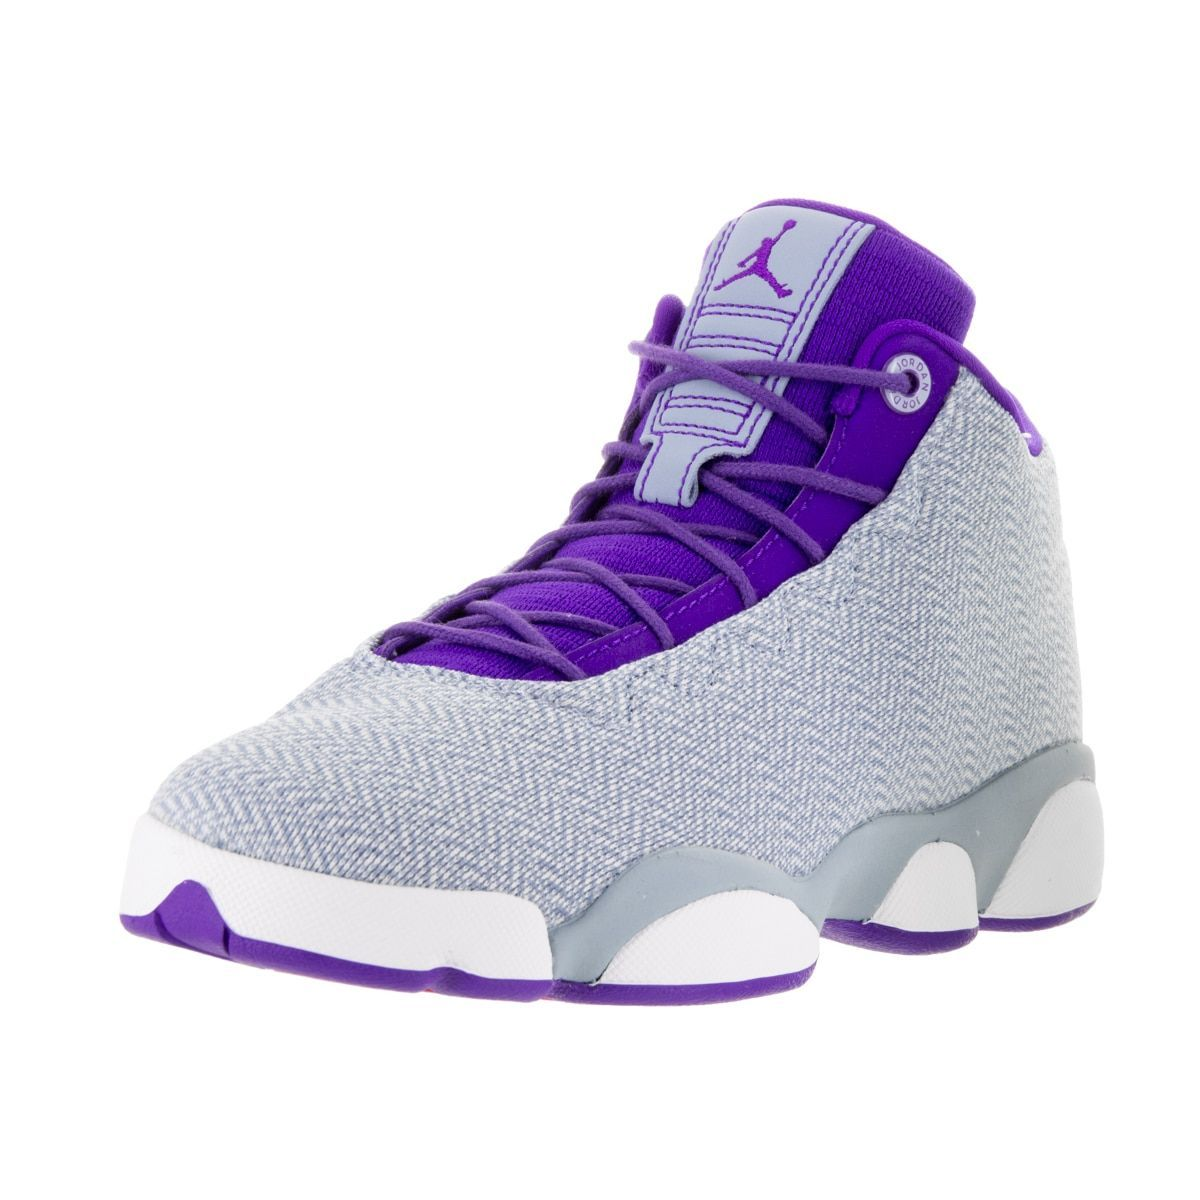 a2f42c46ac69d2 Nike Jordan Kids Jordan Horizon Low Gg Blue  Frc Purple Embr Glw Basketball  Shoe